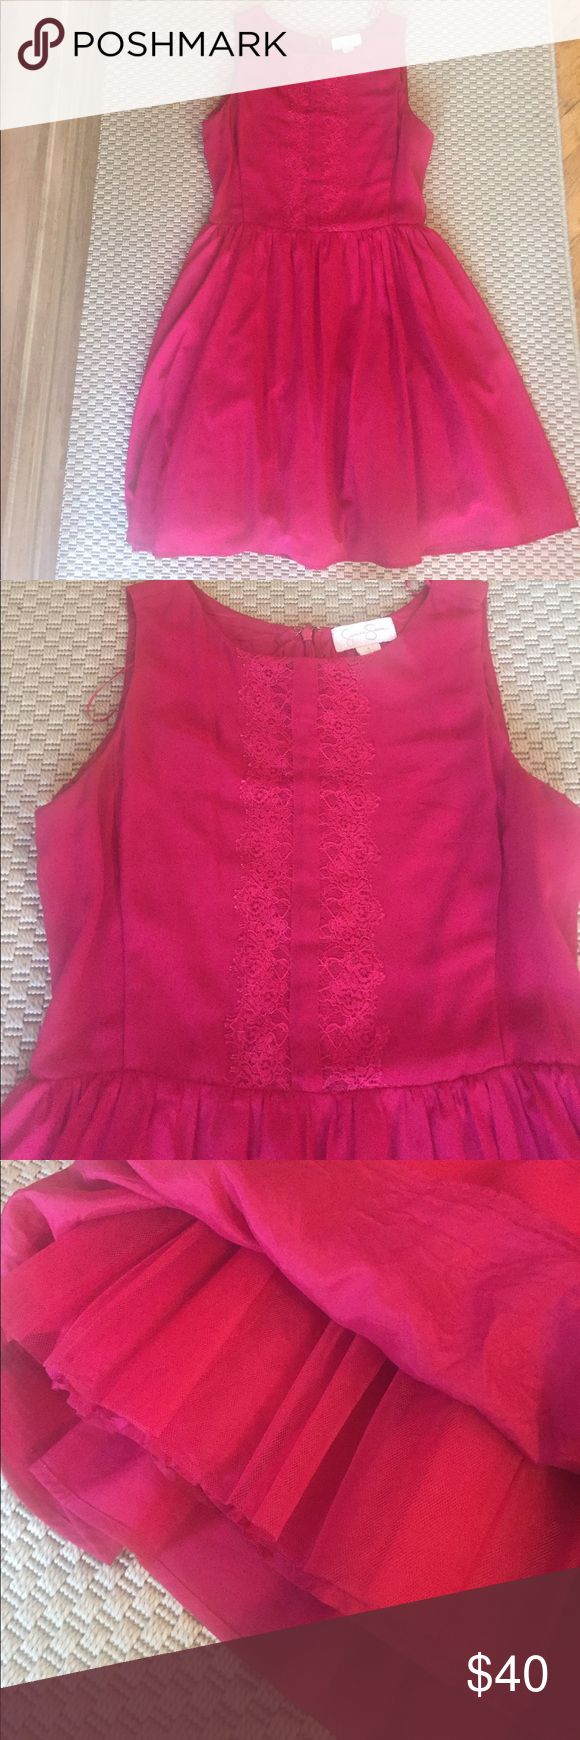 Jessica Simpson a-line dress Adorable Jessica Simpson dress that was worn only a handful of times. It has pockets, tulle underneath the skirt for tiny bit of extra volume and beautiful lace detail Jessica Simpson Dresses